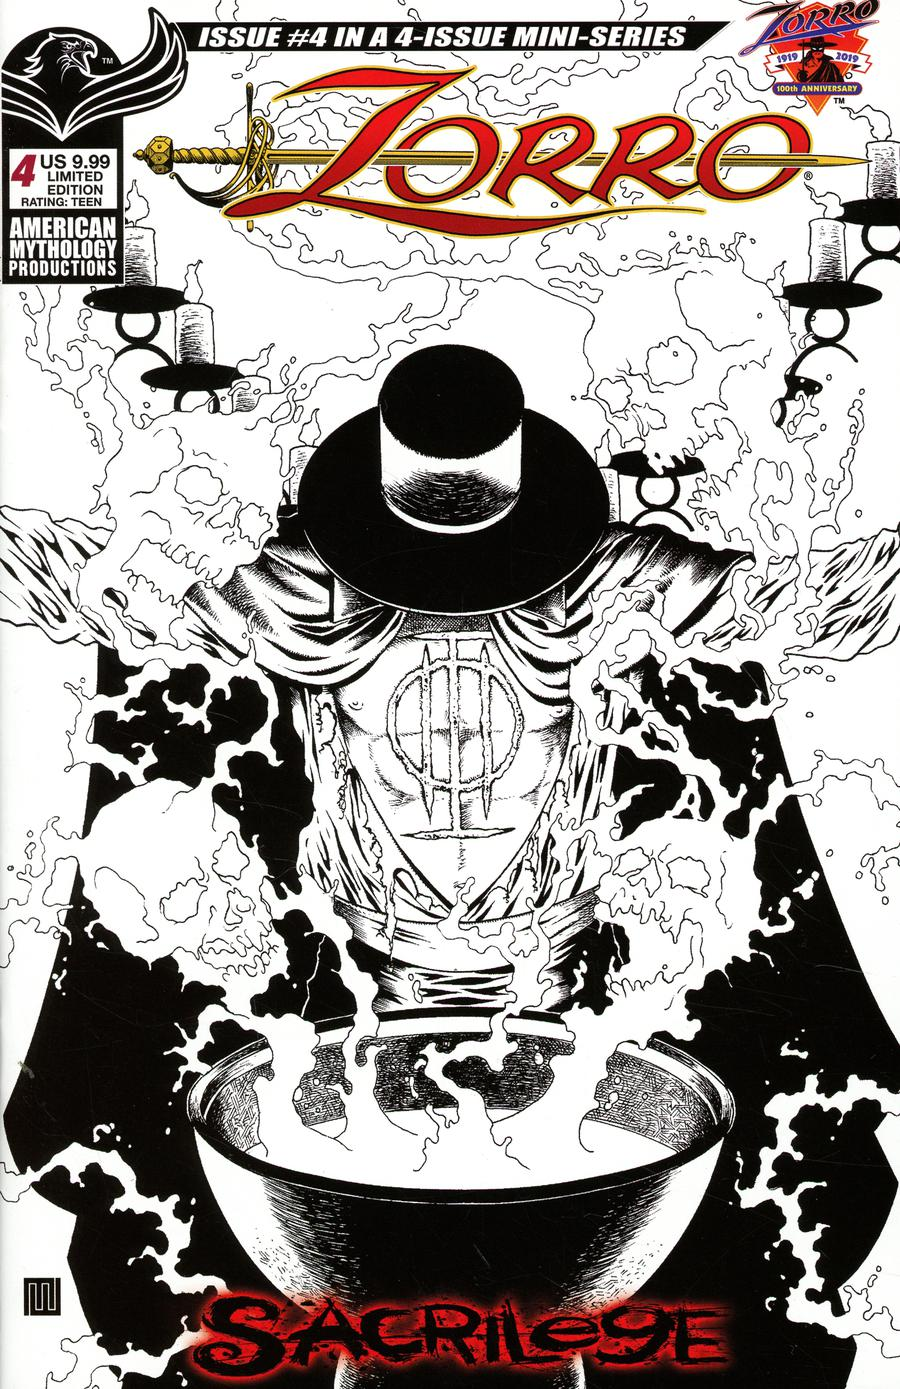 Zorro Sacrilege #4 Cover C Variant Mike Wolfer Visions Of Zorro Black & White Limited Edition Cover